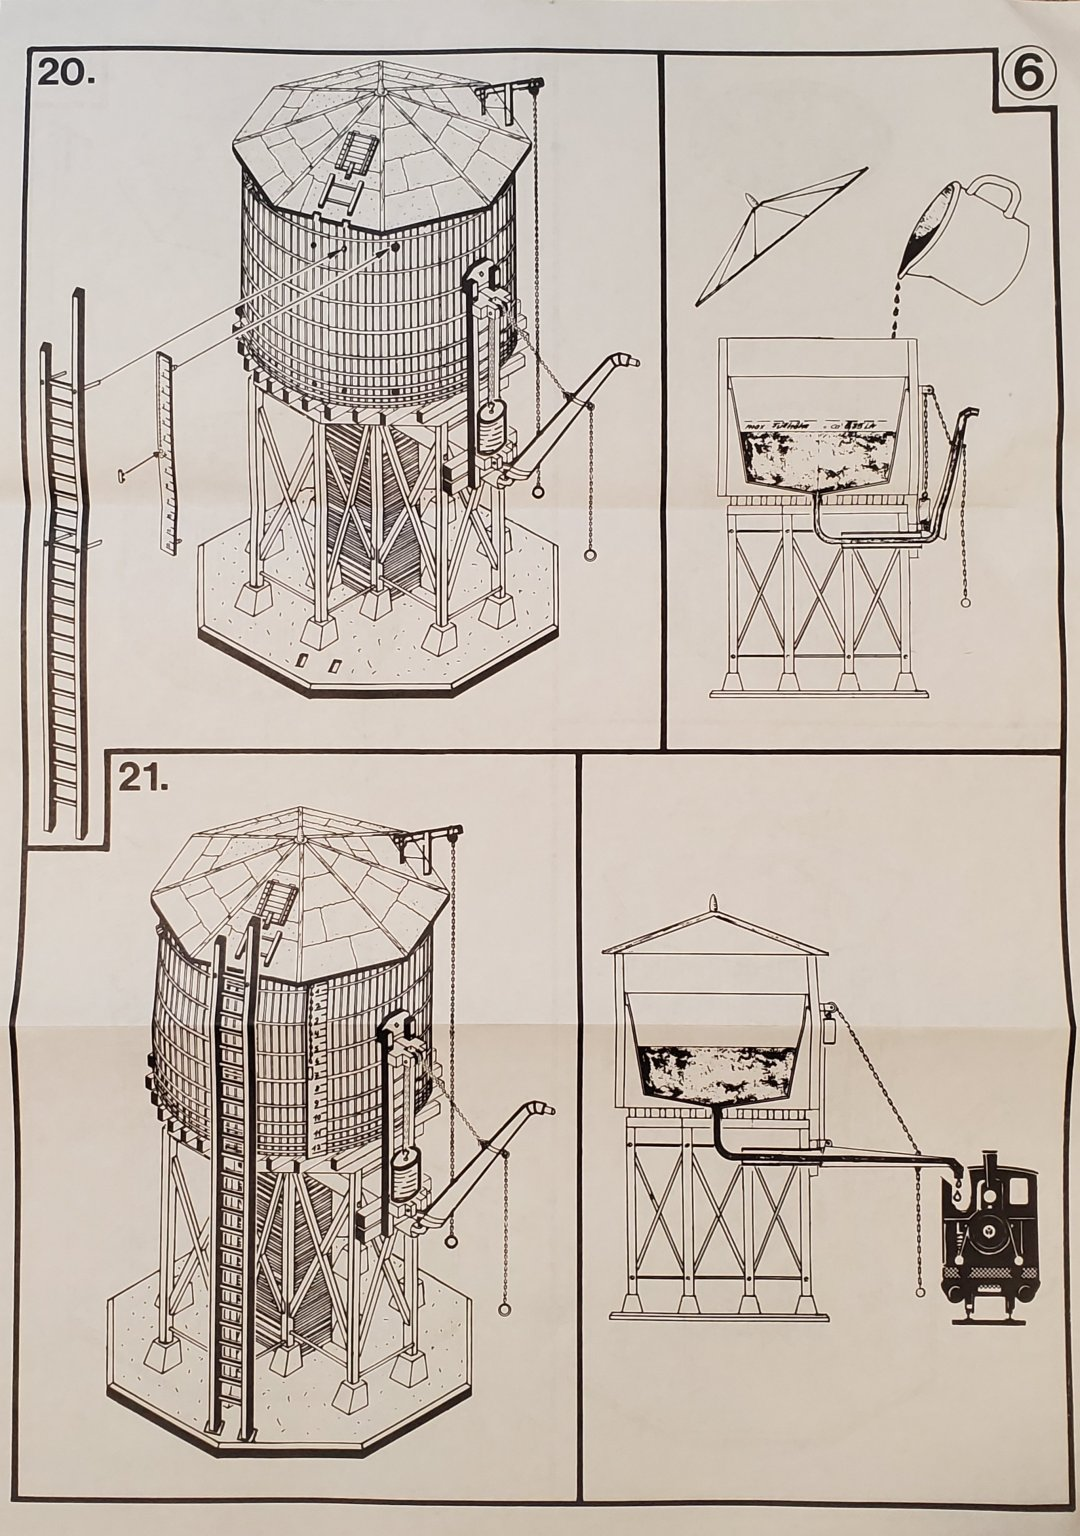 Pola 923 American Water Tower Instructions p6of6.jpg